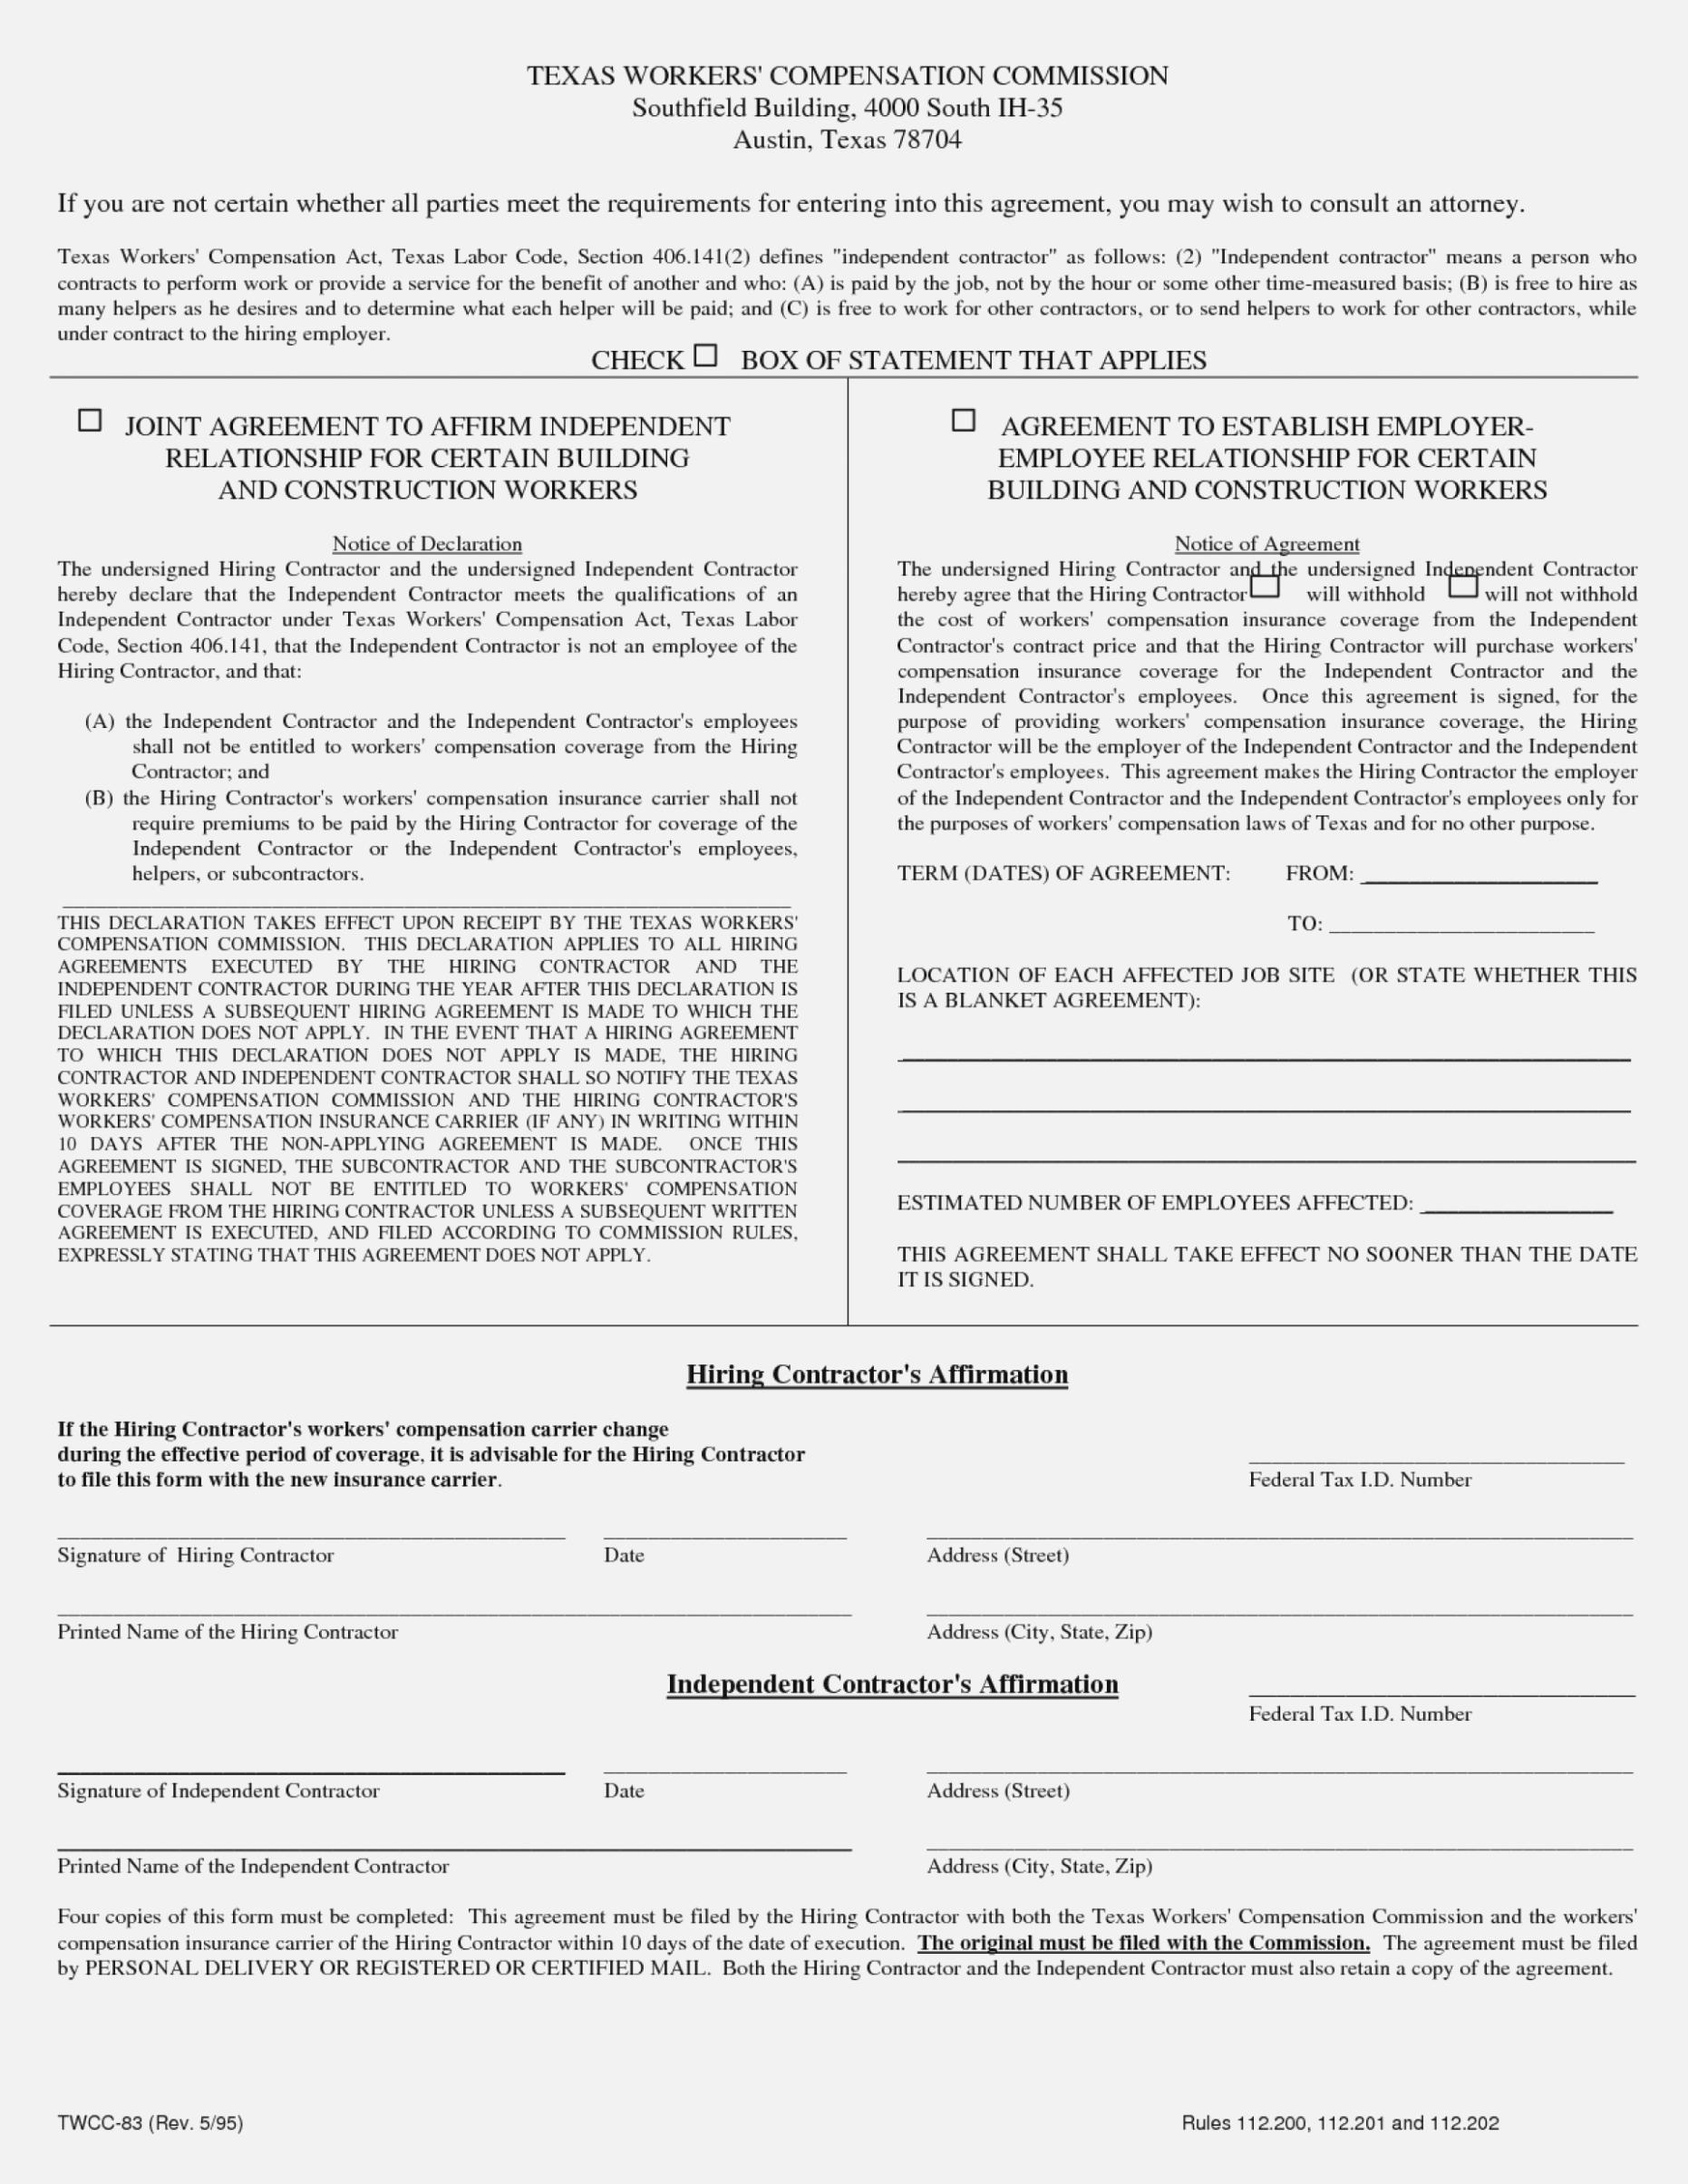 Workers Compensation Waiver Form California